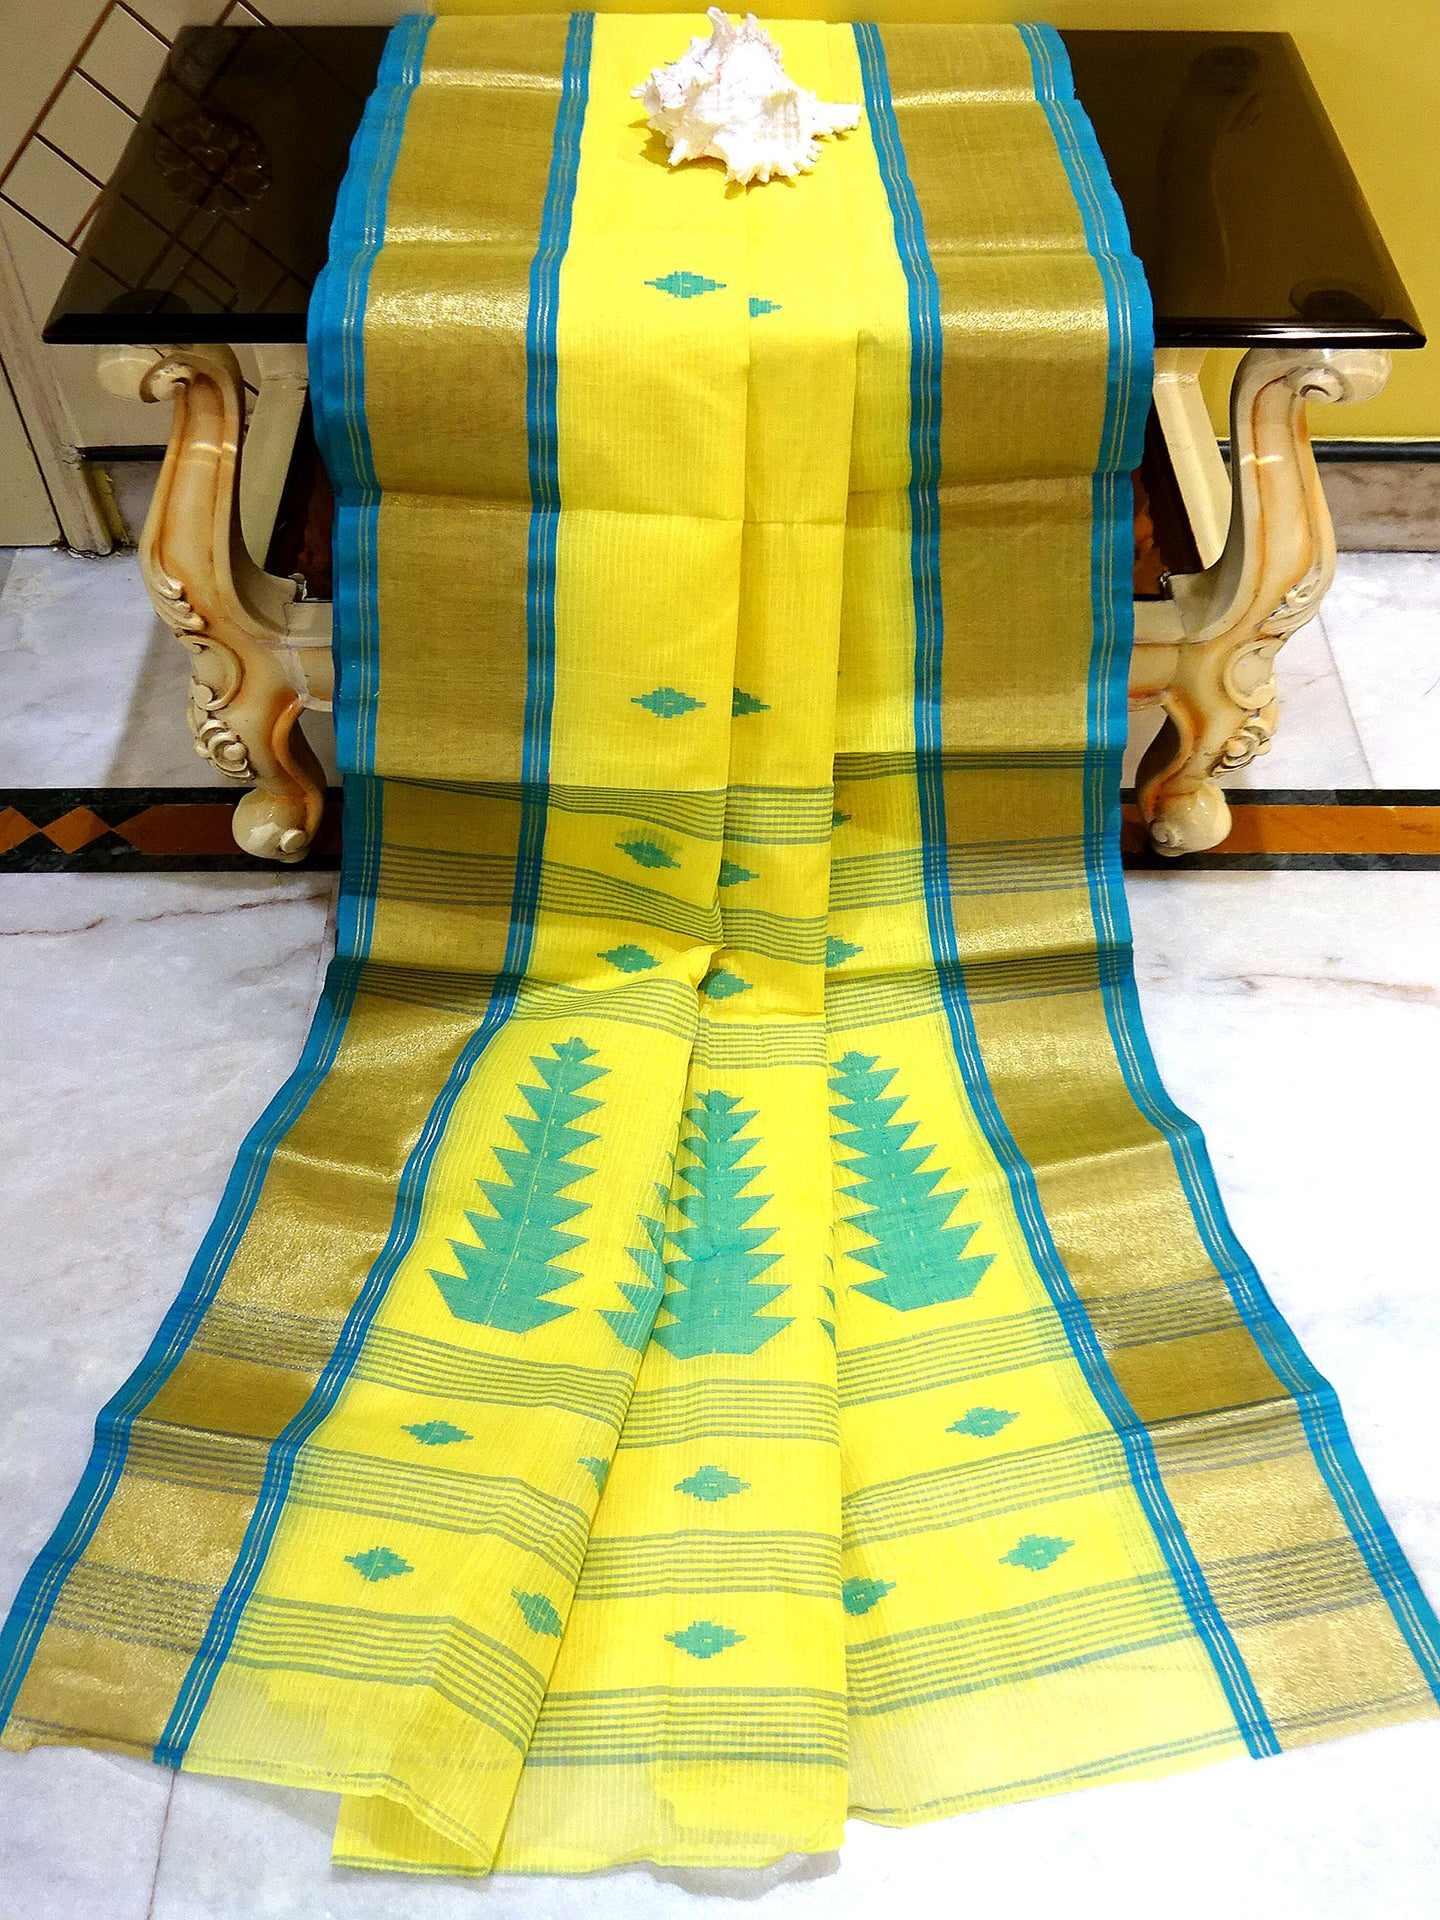 Bengal Handloom Ganga Jamuna Border Cotton Hazar Buti Saree in Yellow Colour from Bengal Looms India